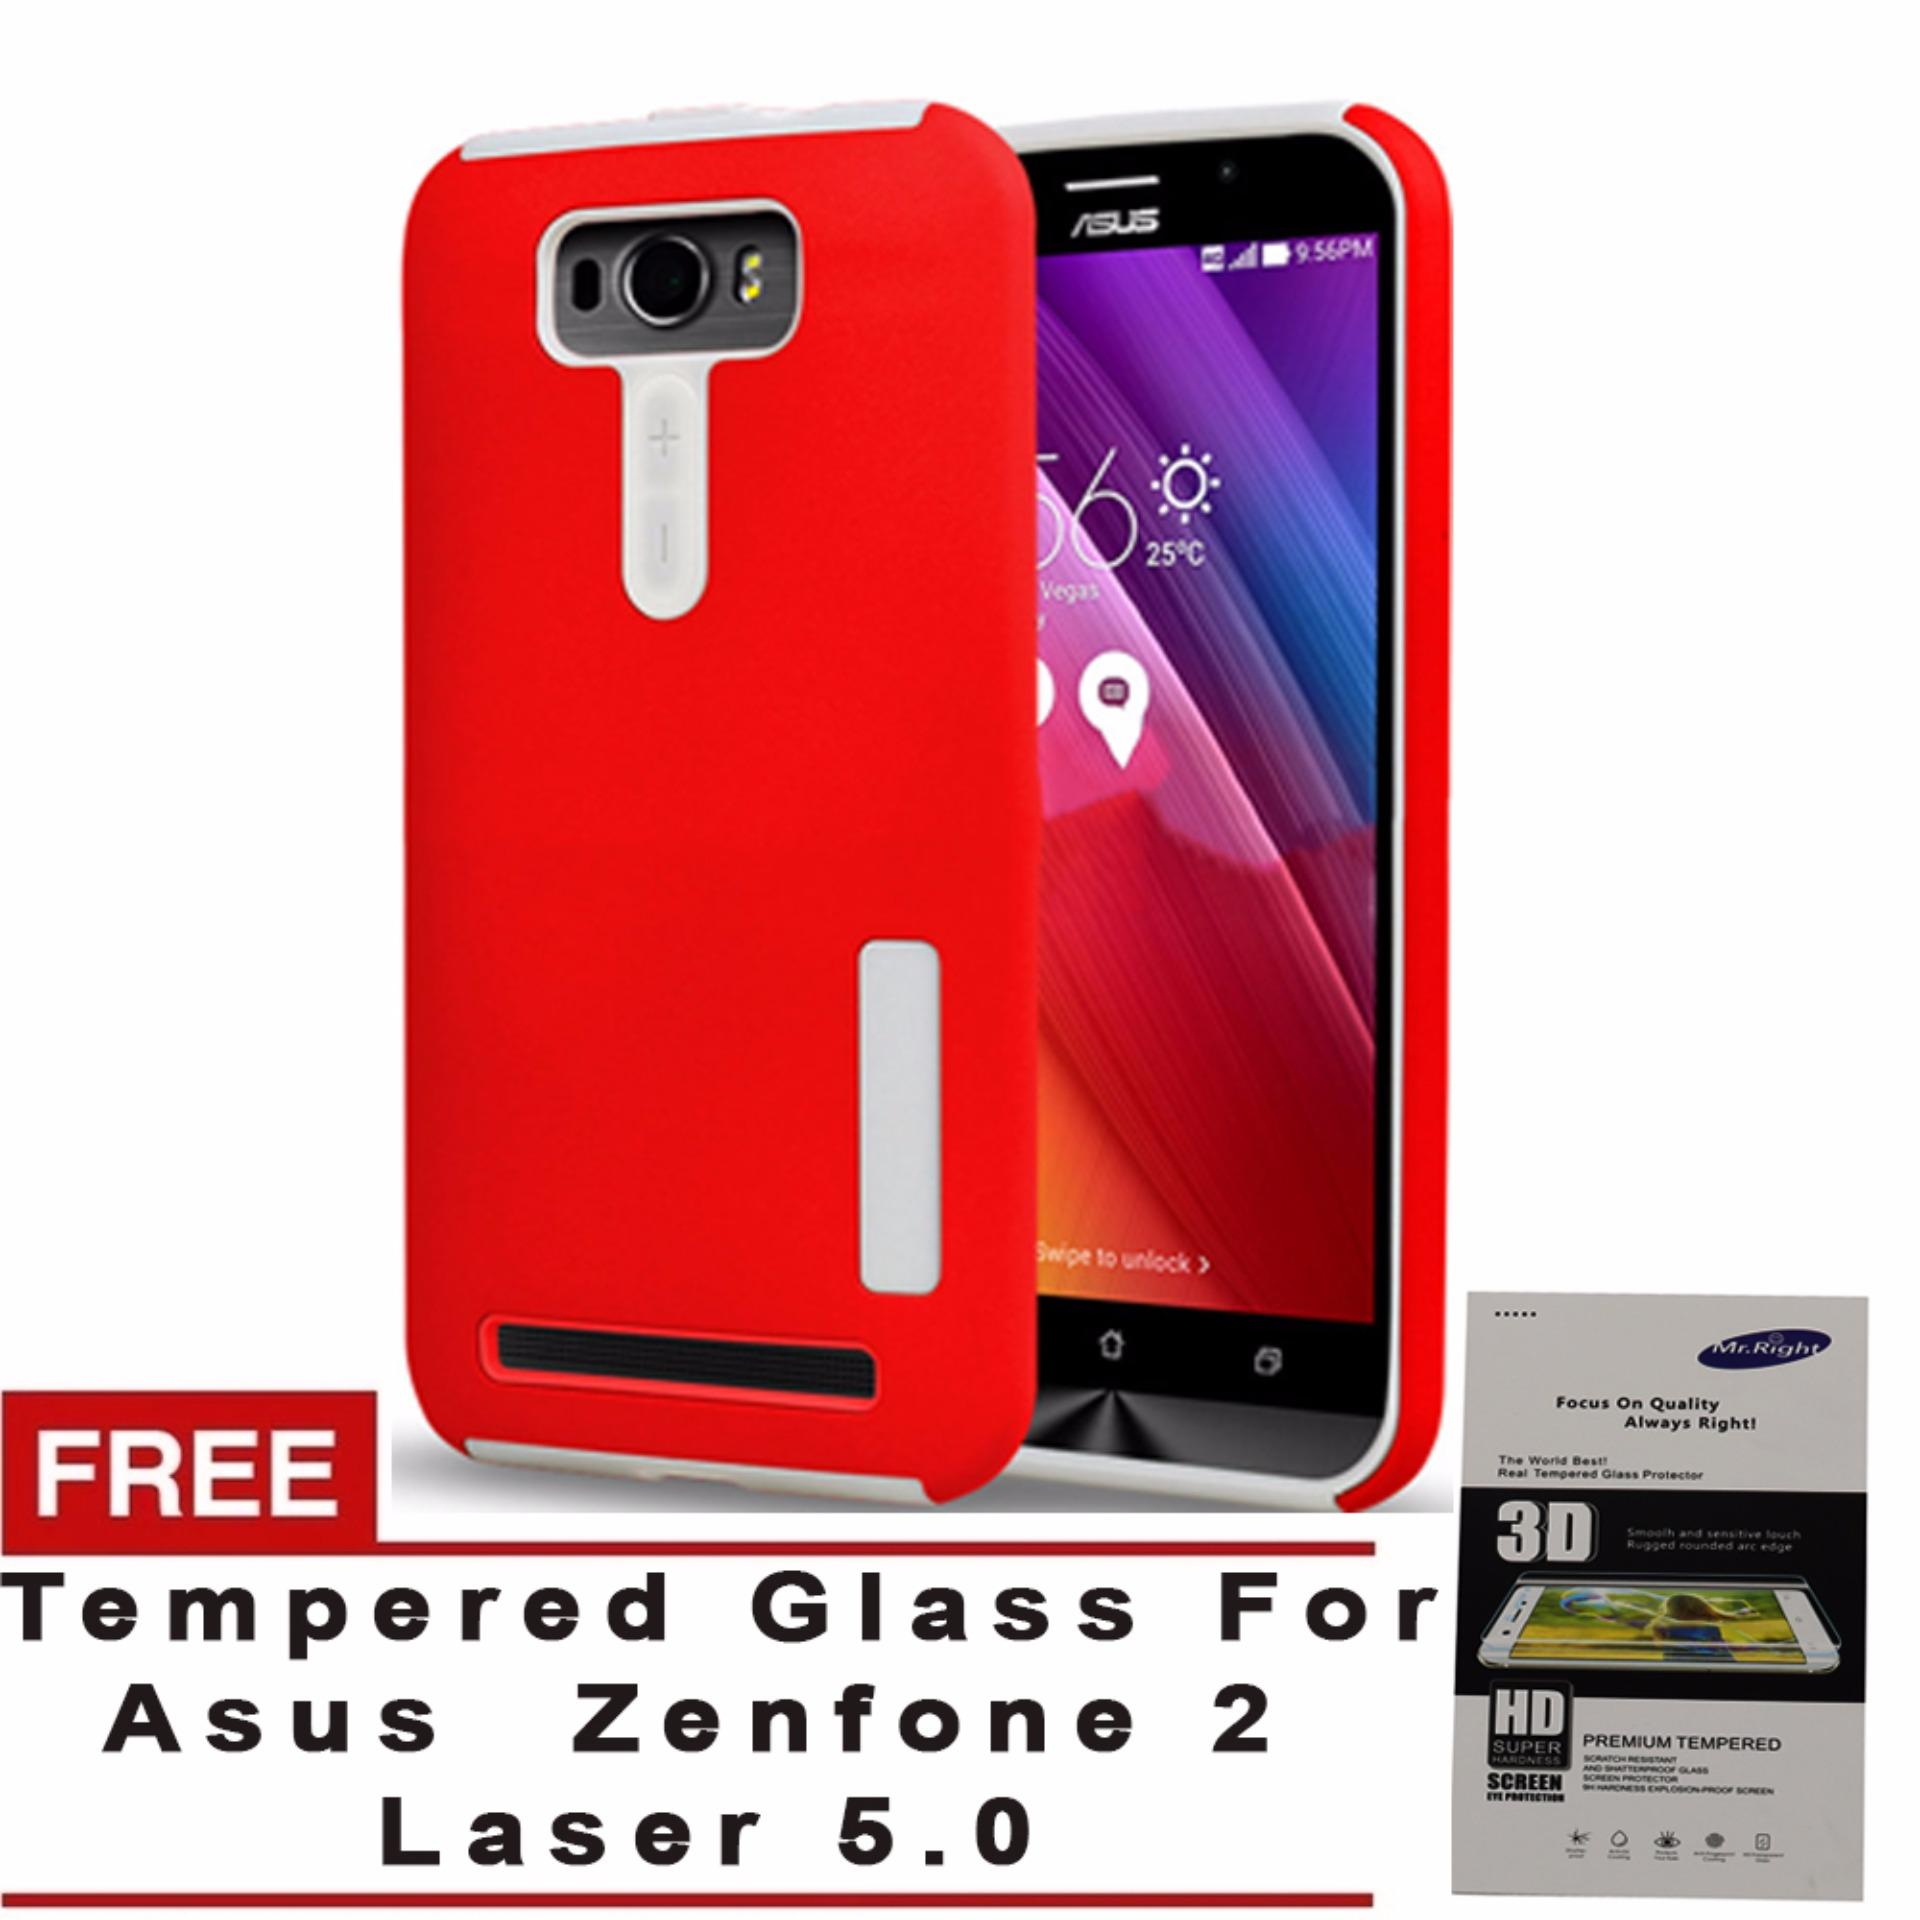 Ruilean Tpupc Tough Rugged Hybrid Case For Asus Zenfone 2 Laser Ze601kl Free Zenflash Incipio Tpu Back Cover Hardshell With Impact Absorbingcore